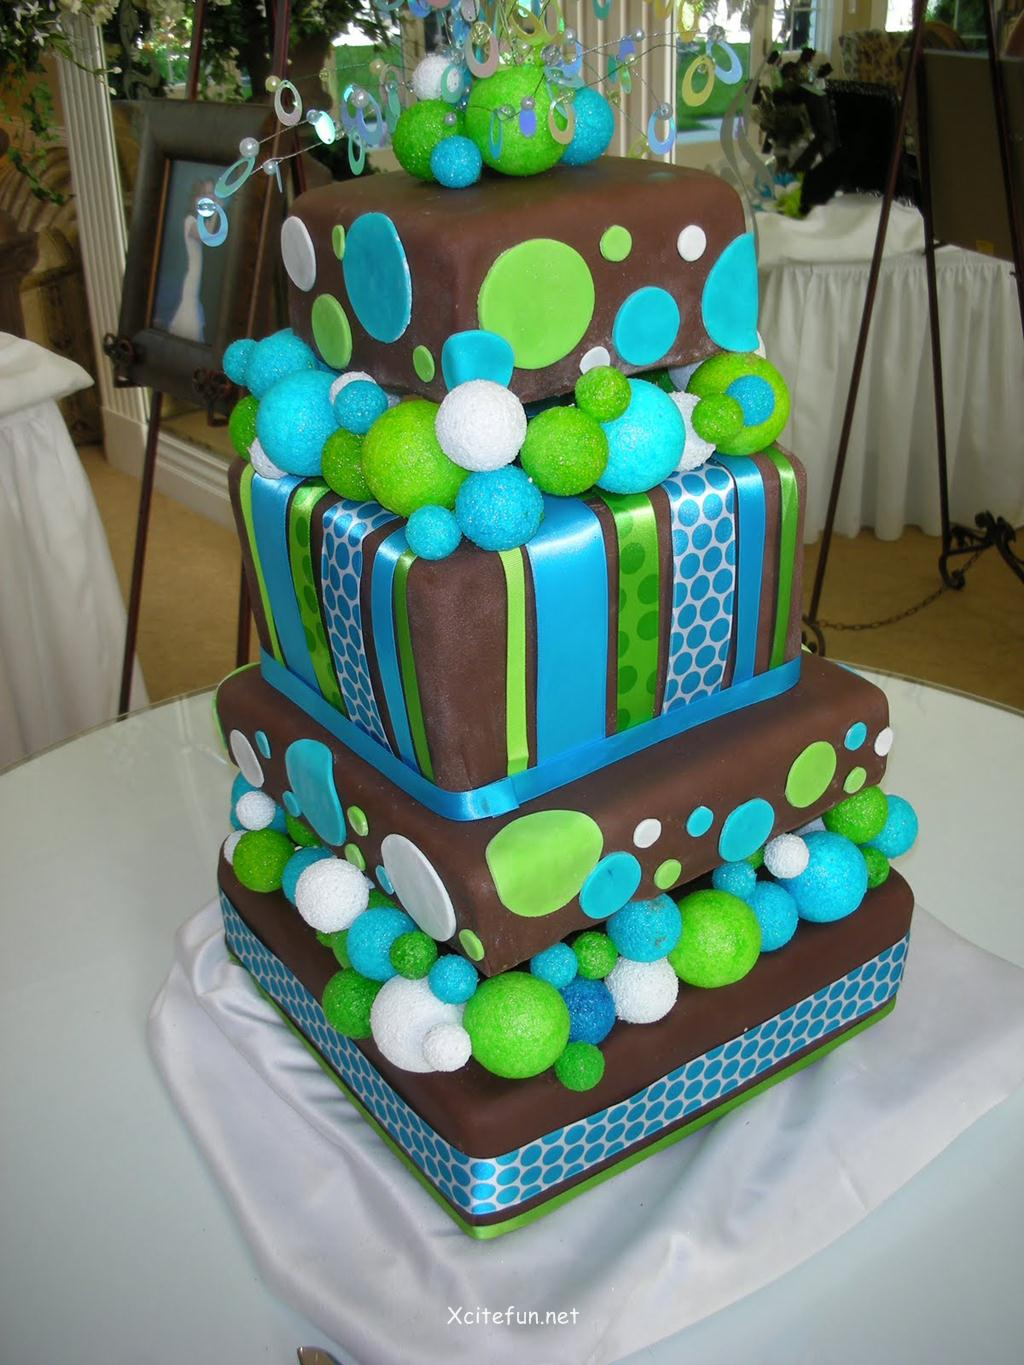 Cake Decor Ideas : Wedding Cakes - Decorating Ideas - XciteFun.net